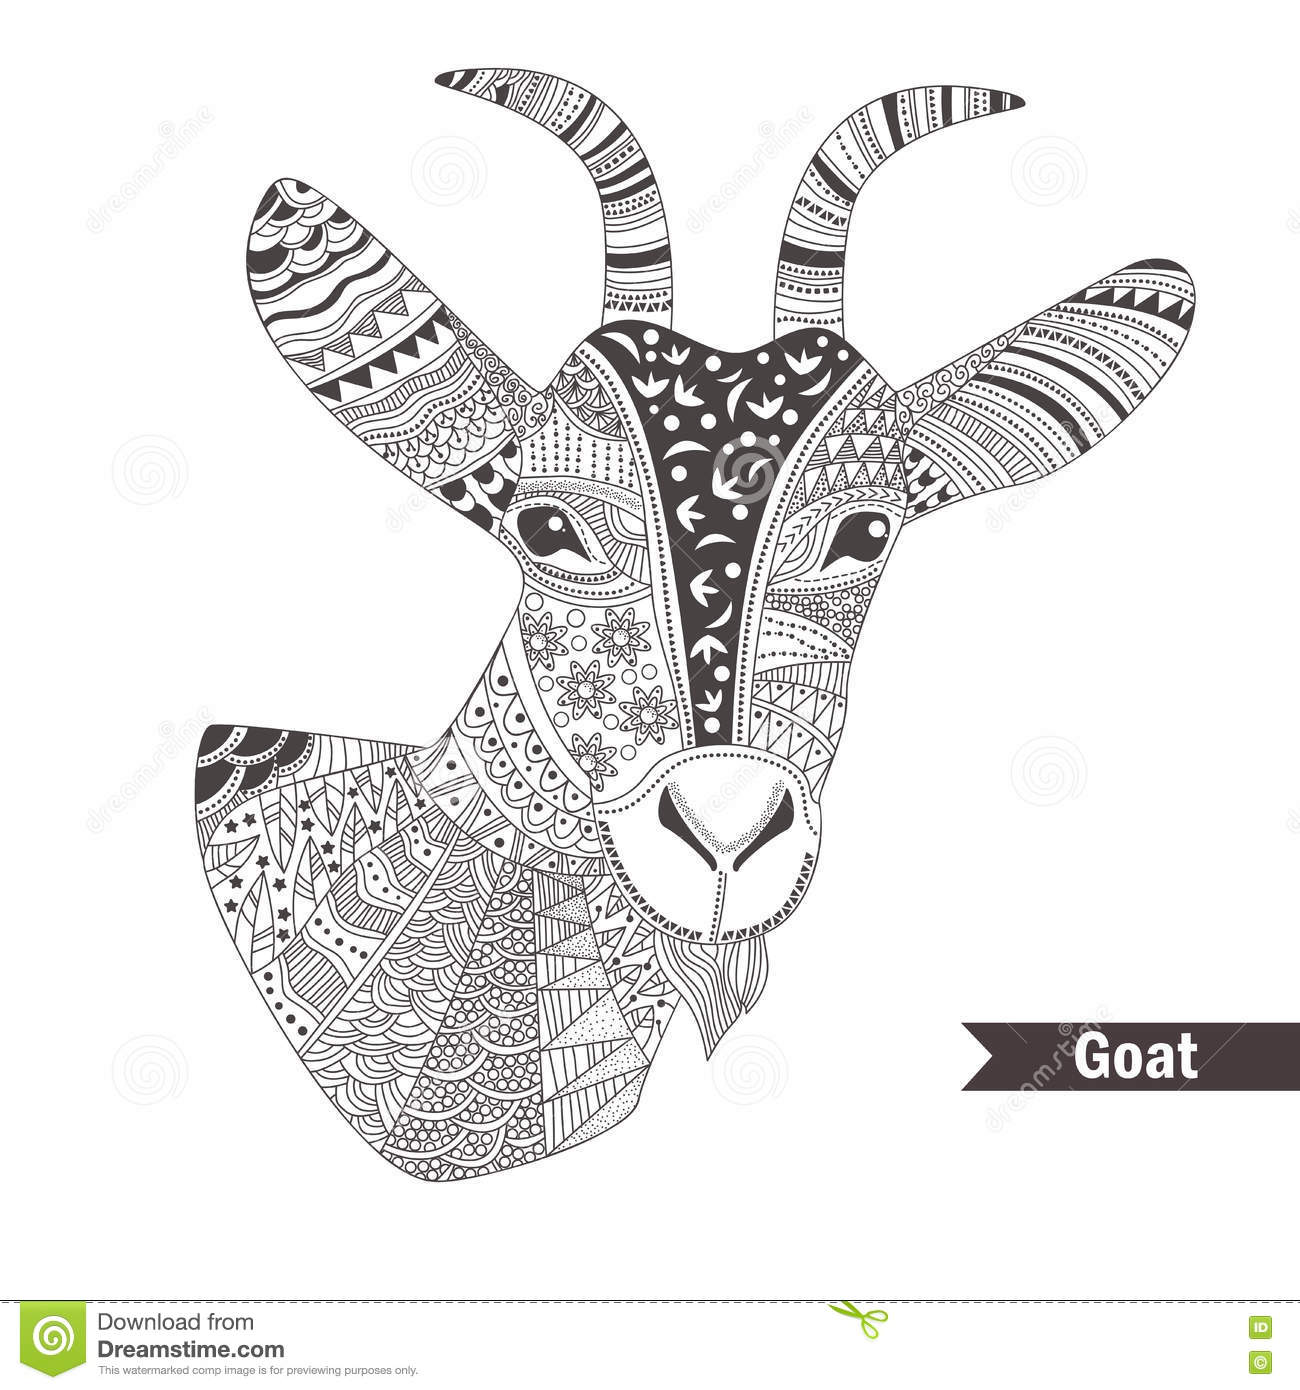 Goat Oloring Book Stock Vector Image Of Graphic Head